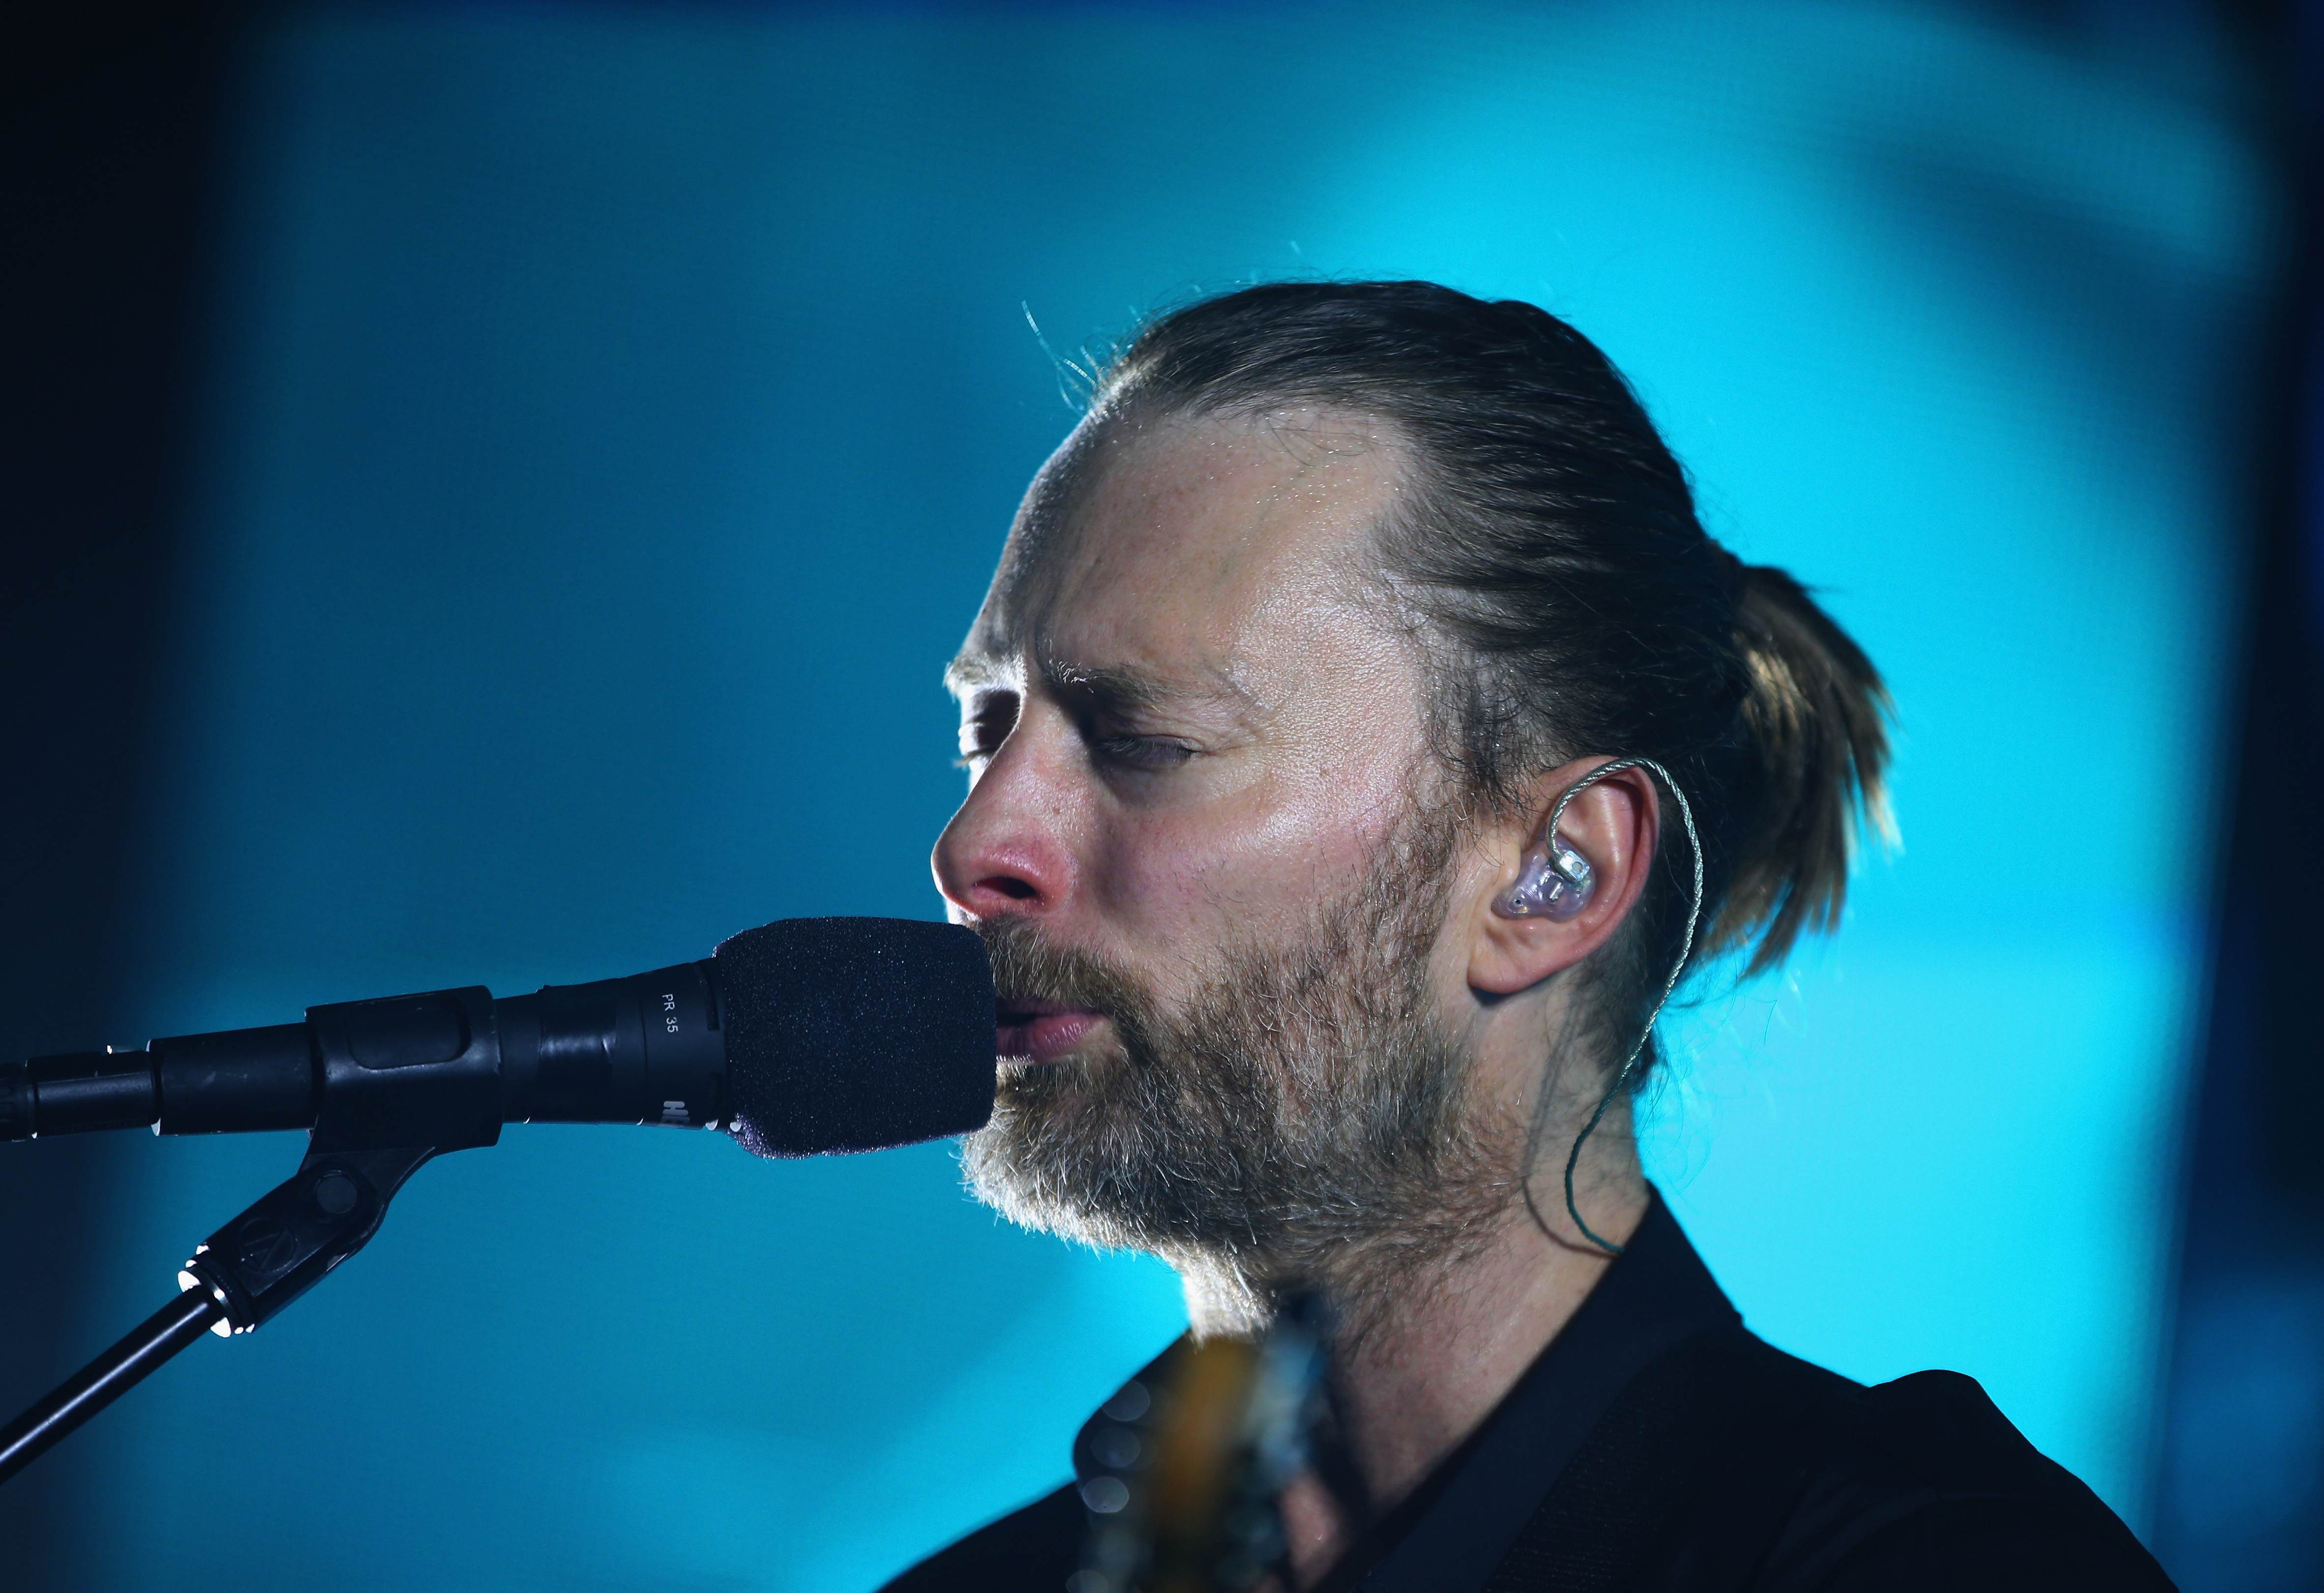 AUCKLAND, NEW ZEALAND - NOVEMBER 06:  Thom Yorke of Radiohead performs at Vector Arena on November 6, 2012 in Auckland, New Z